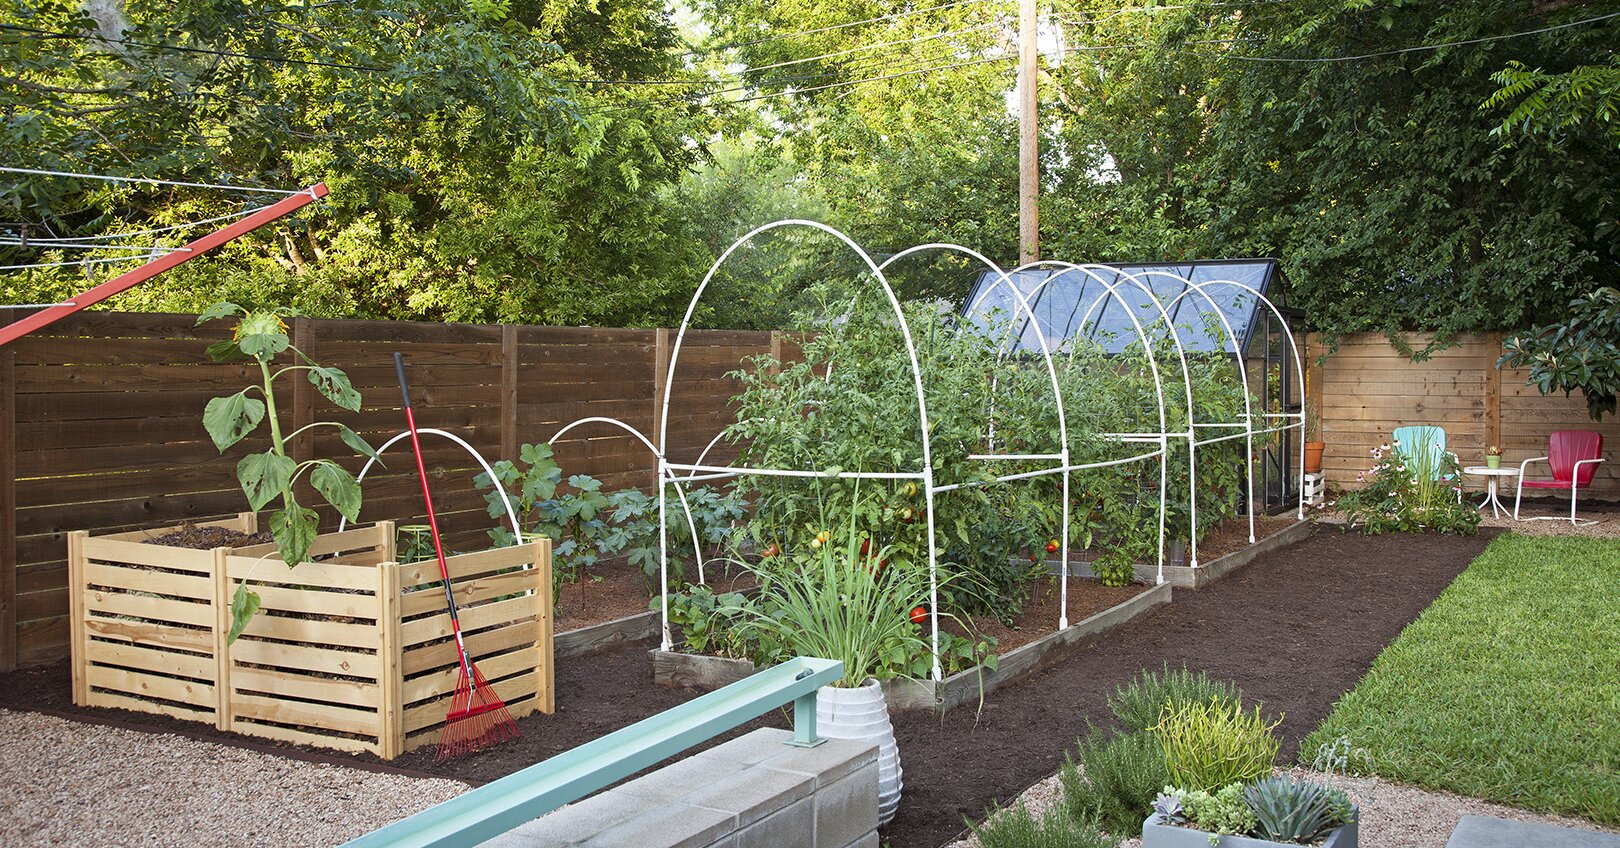 Make This Easy PVC Pipe Garden Trellis to Grow Perfect Produce